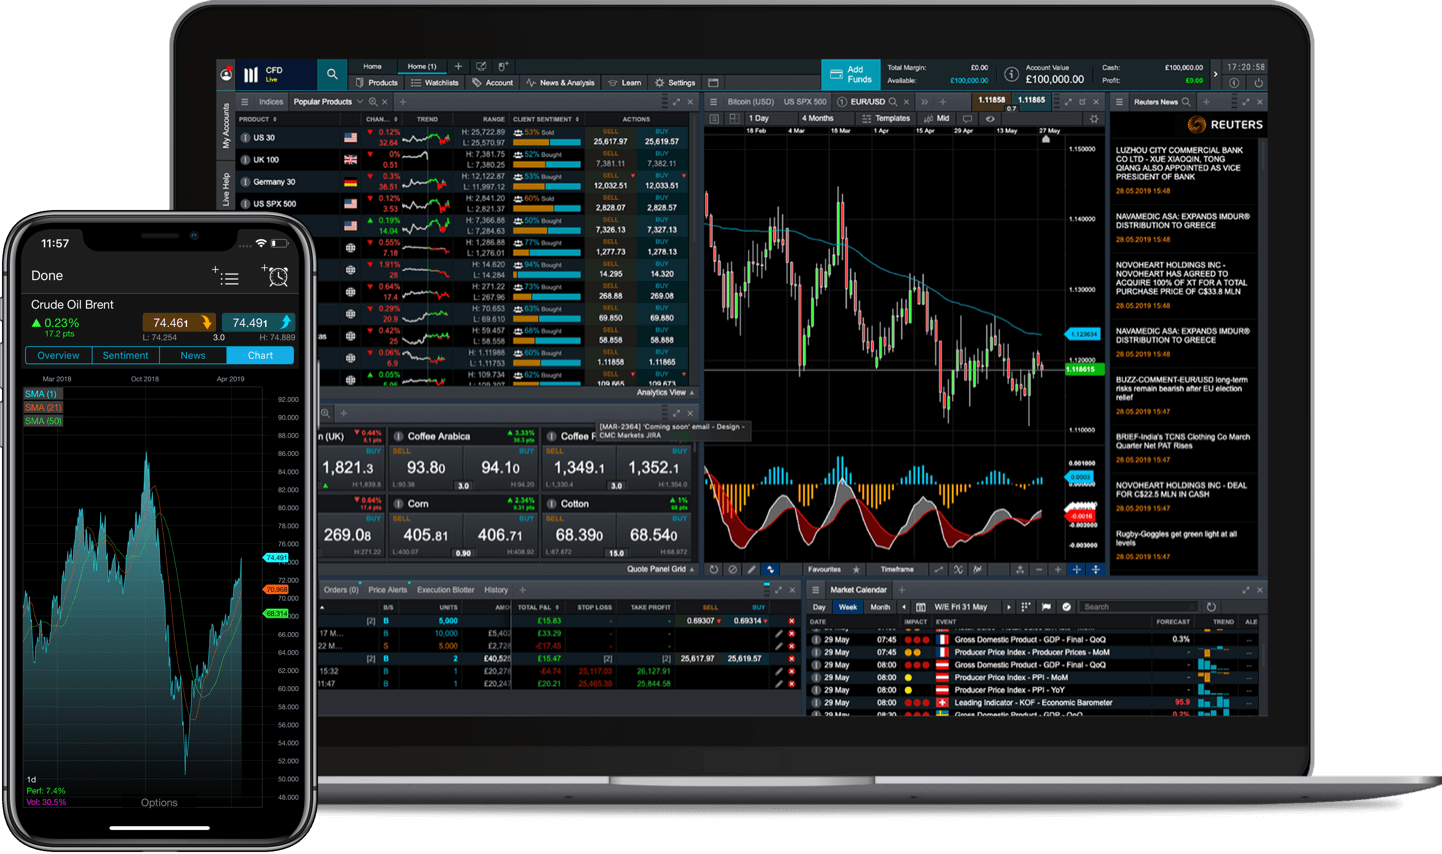 Online trading with CMC Markets Next Generation platform for Desktop and Mobile